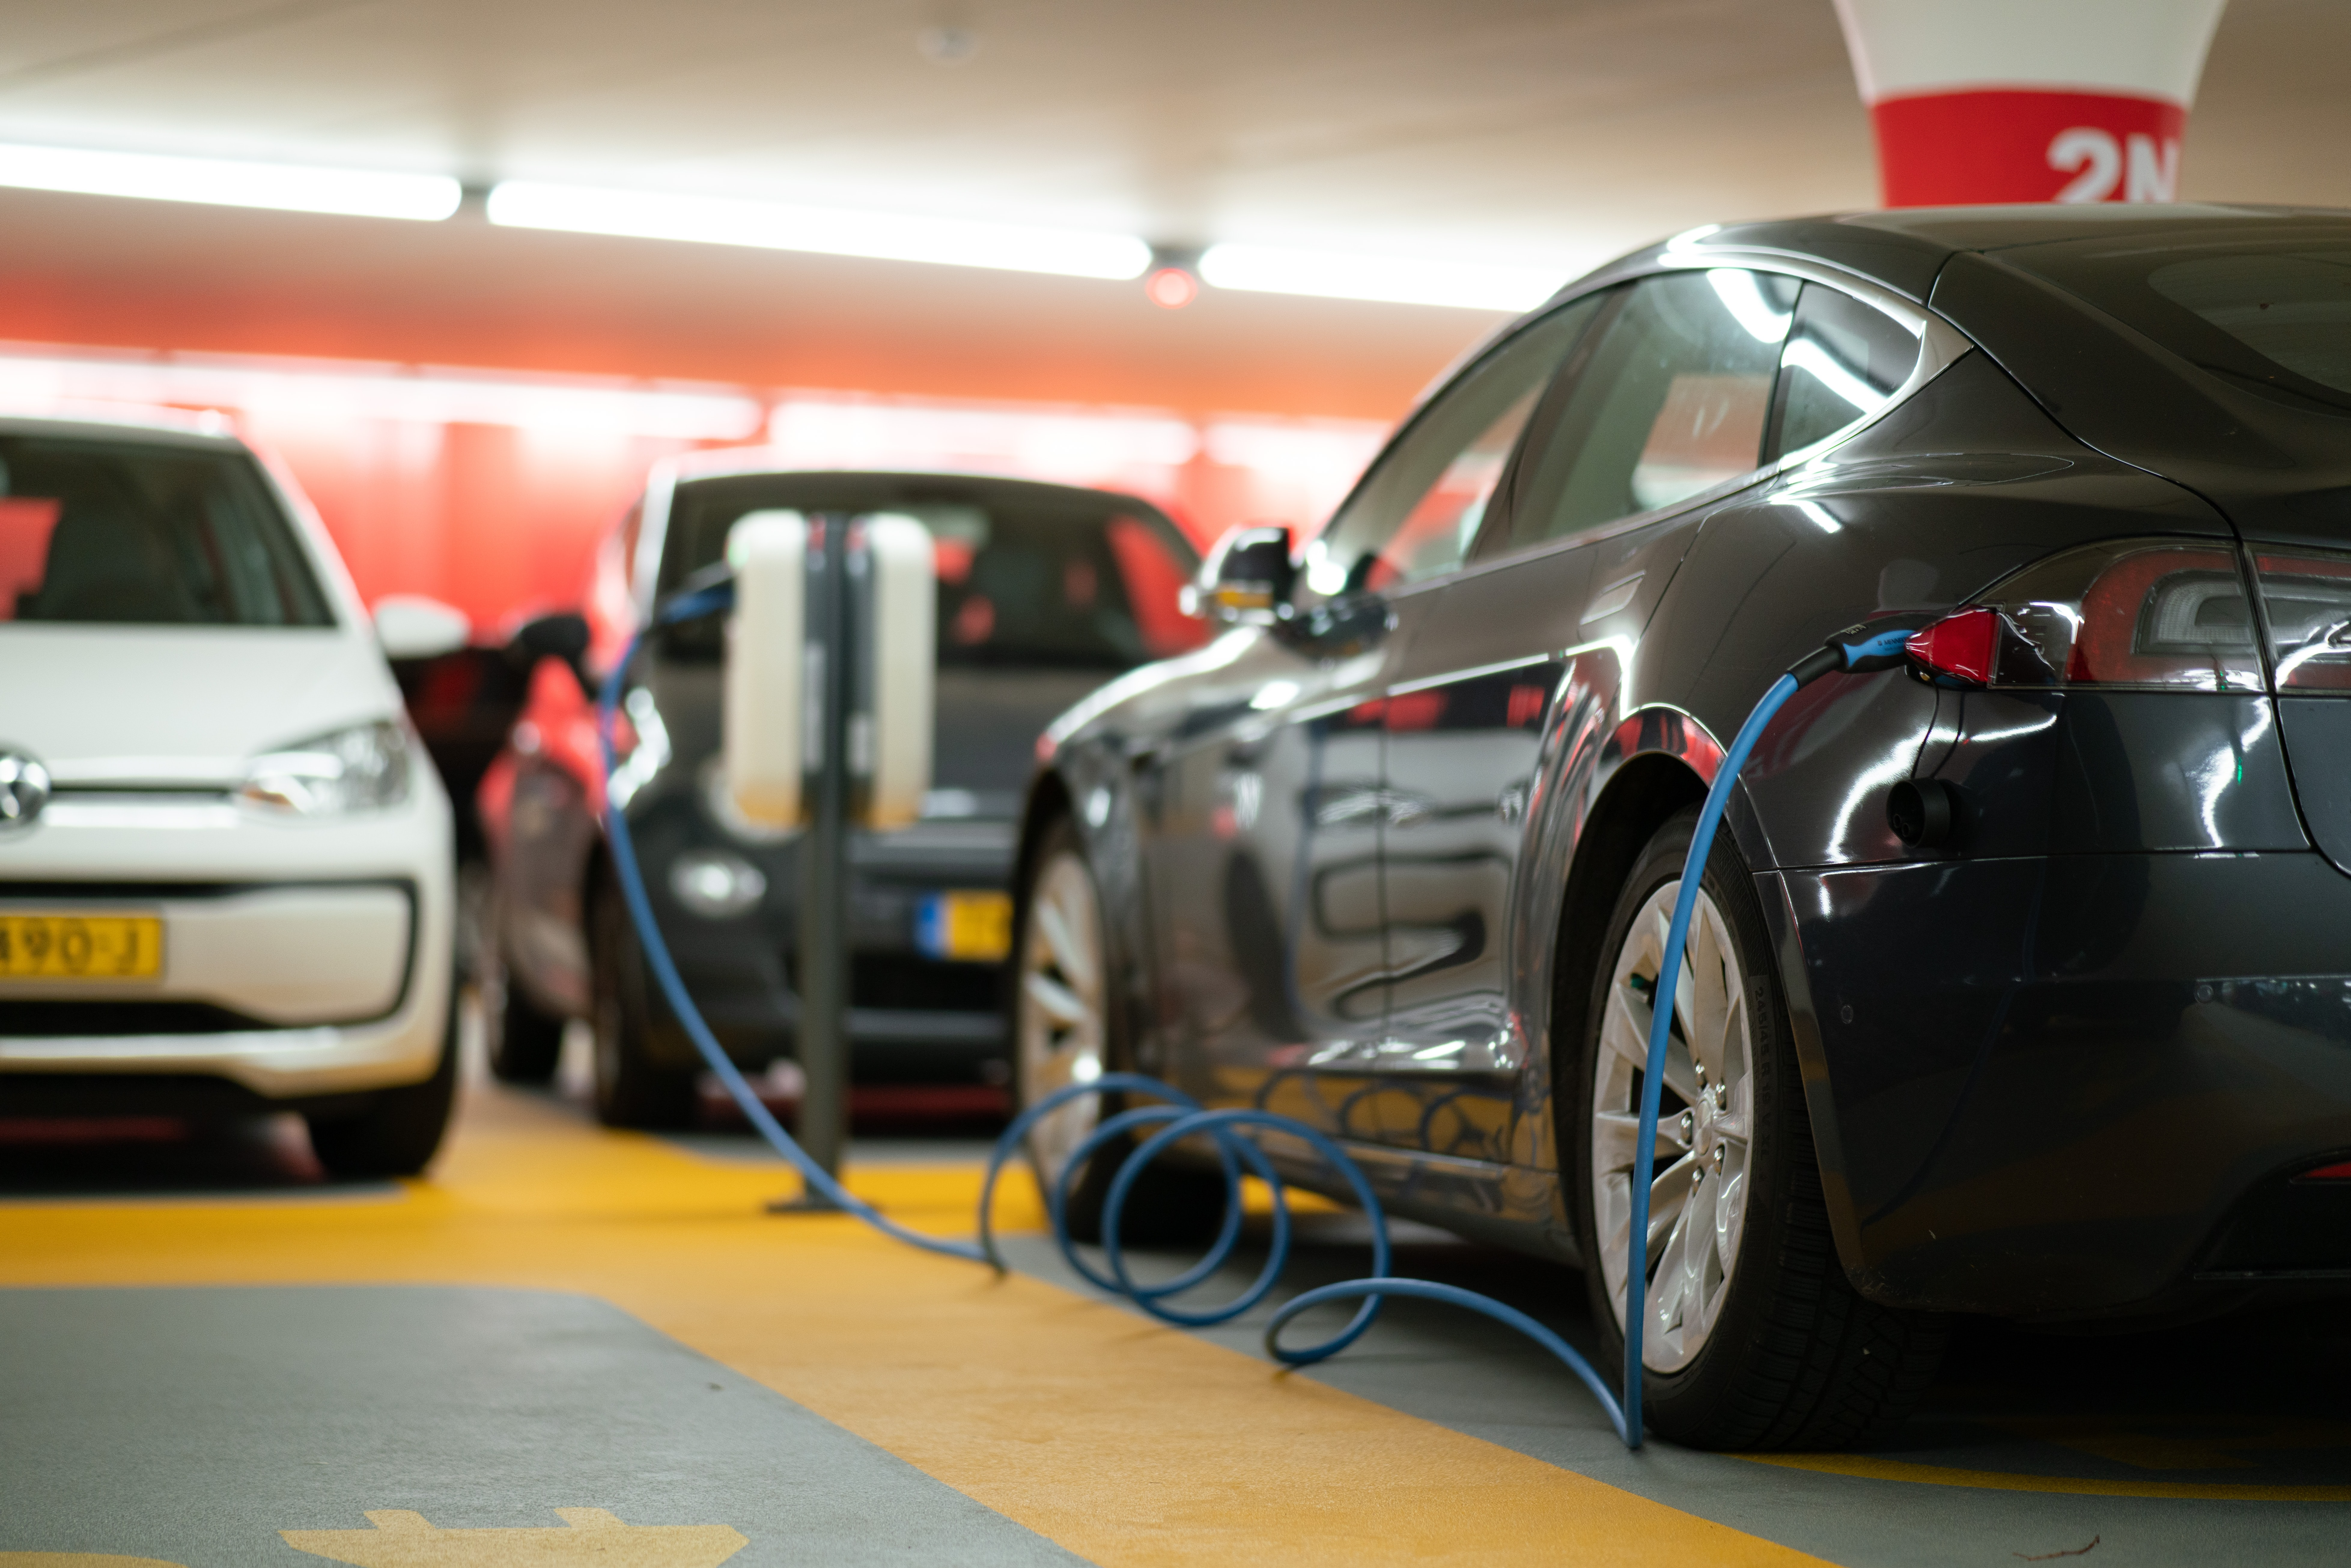 Rear view of a black electric car charging in a car park with a blue cable